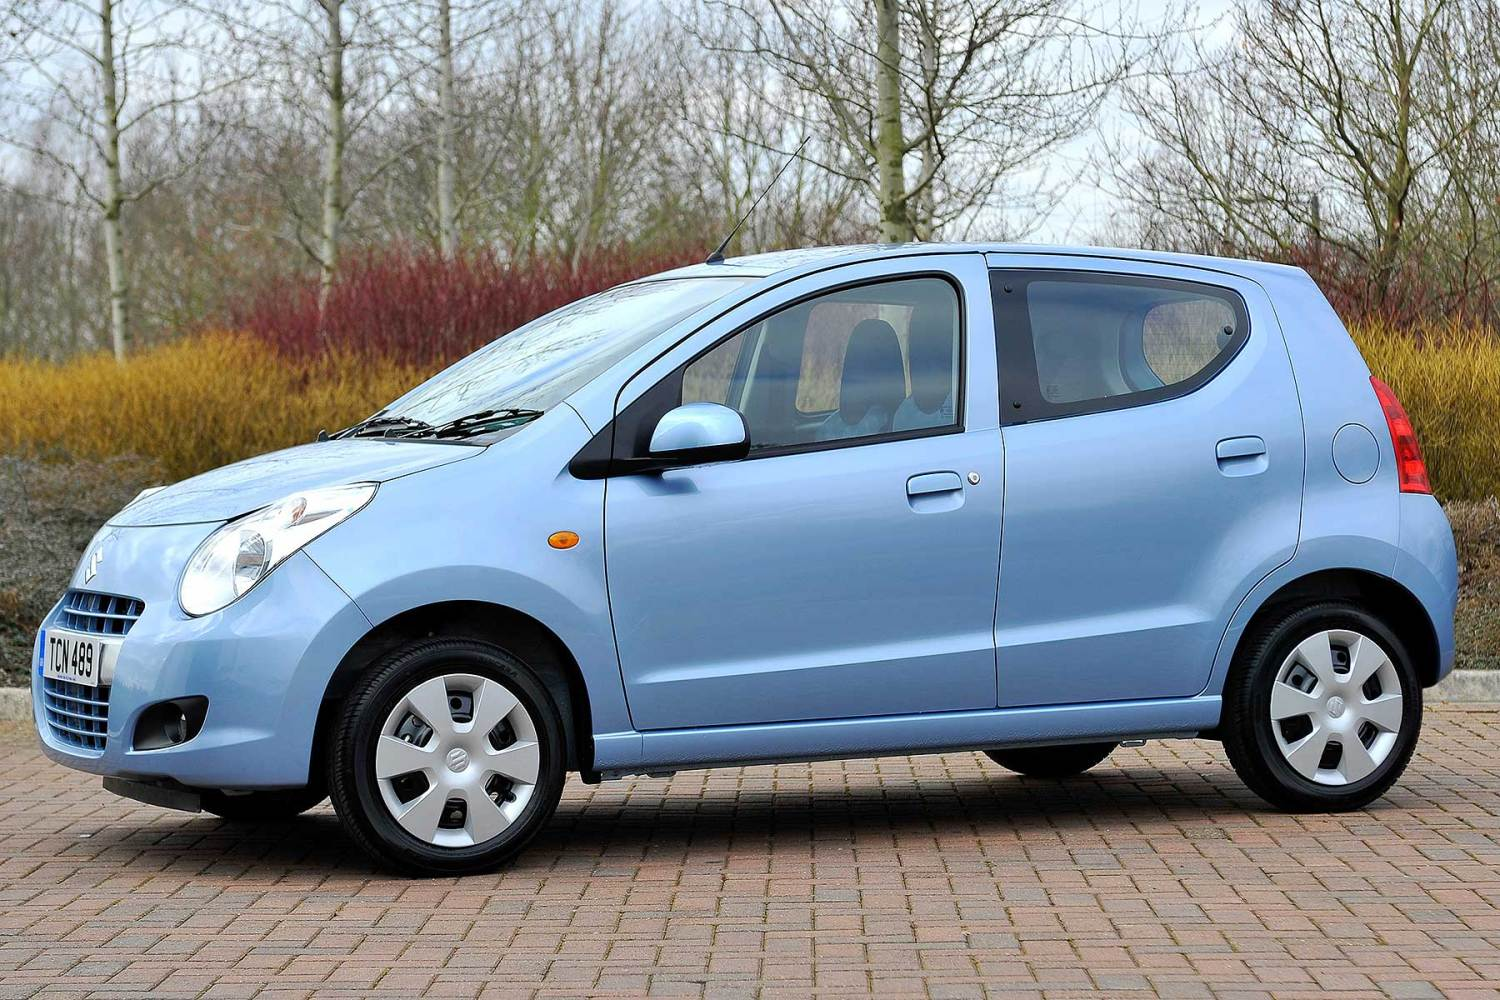 The cheapest cars to insure for 17-18 year olds: Suzuki Alto